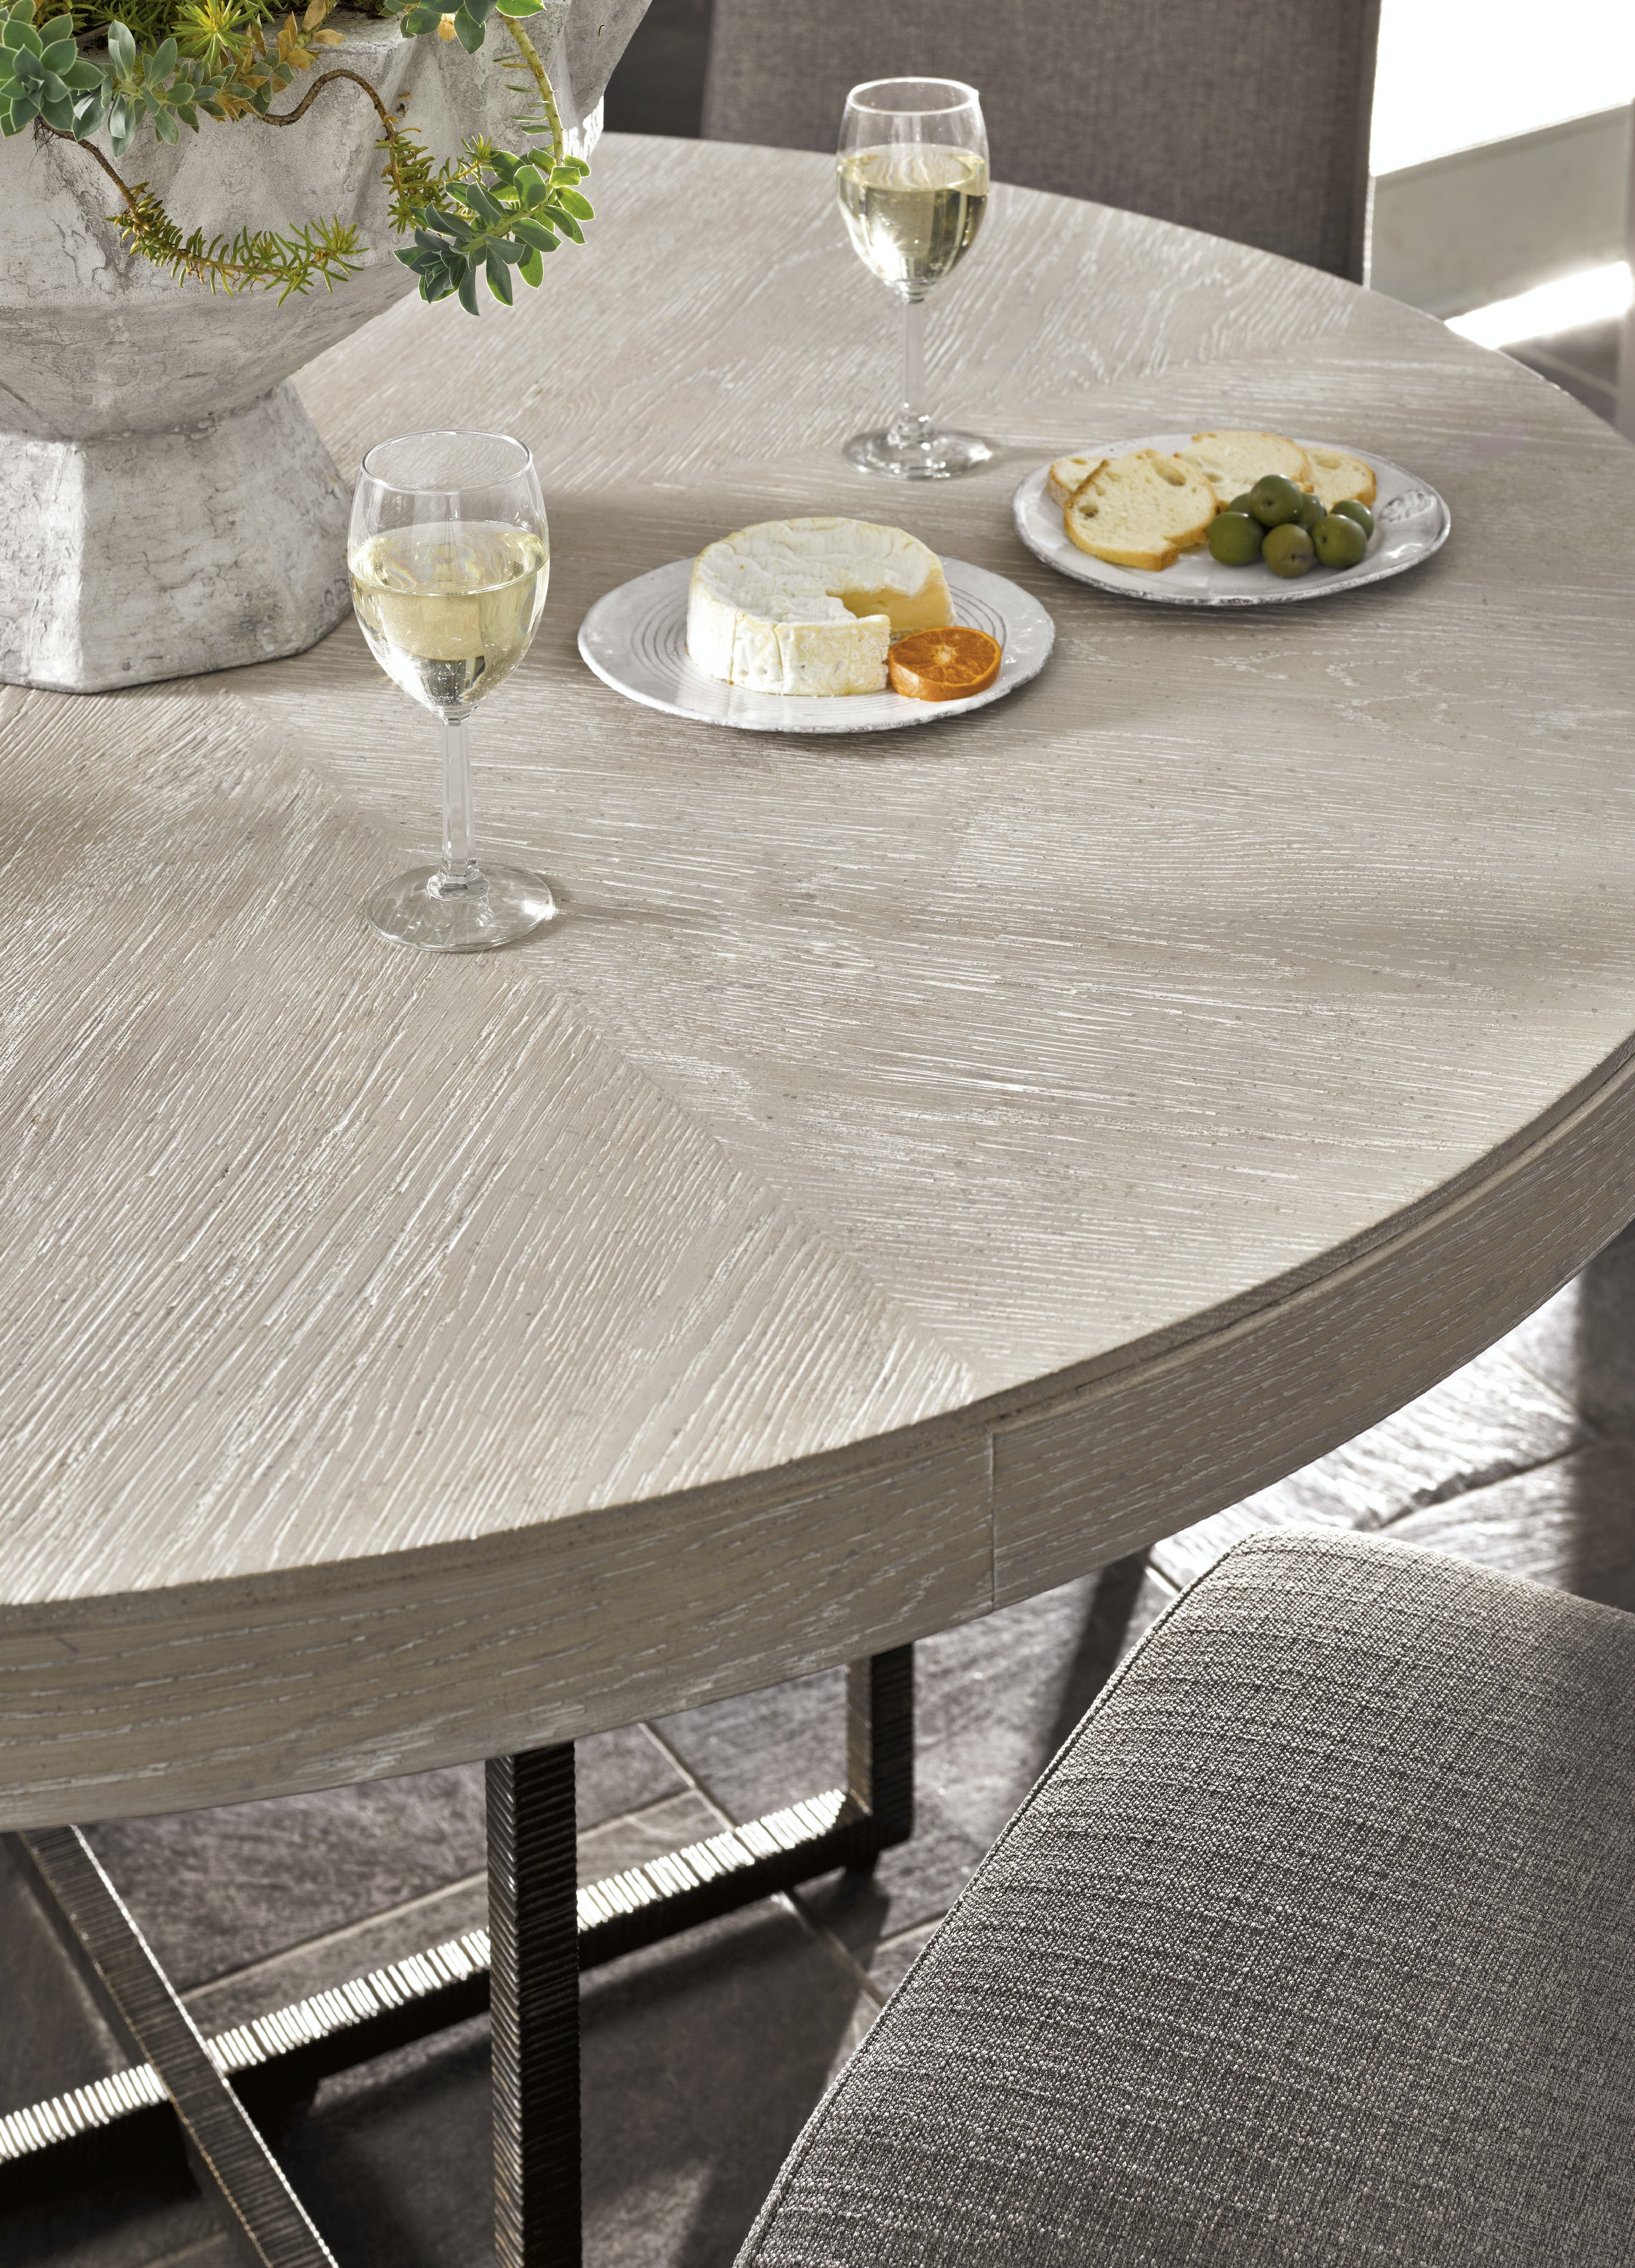 Dining Room Modern Quartz Robards Round Dining Table : 480352d from www.starfurniture.com size 1024 x 768 jpeg 71kB